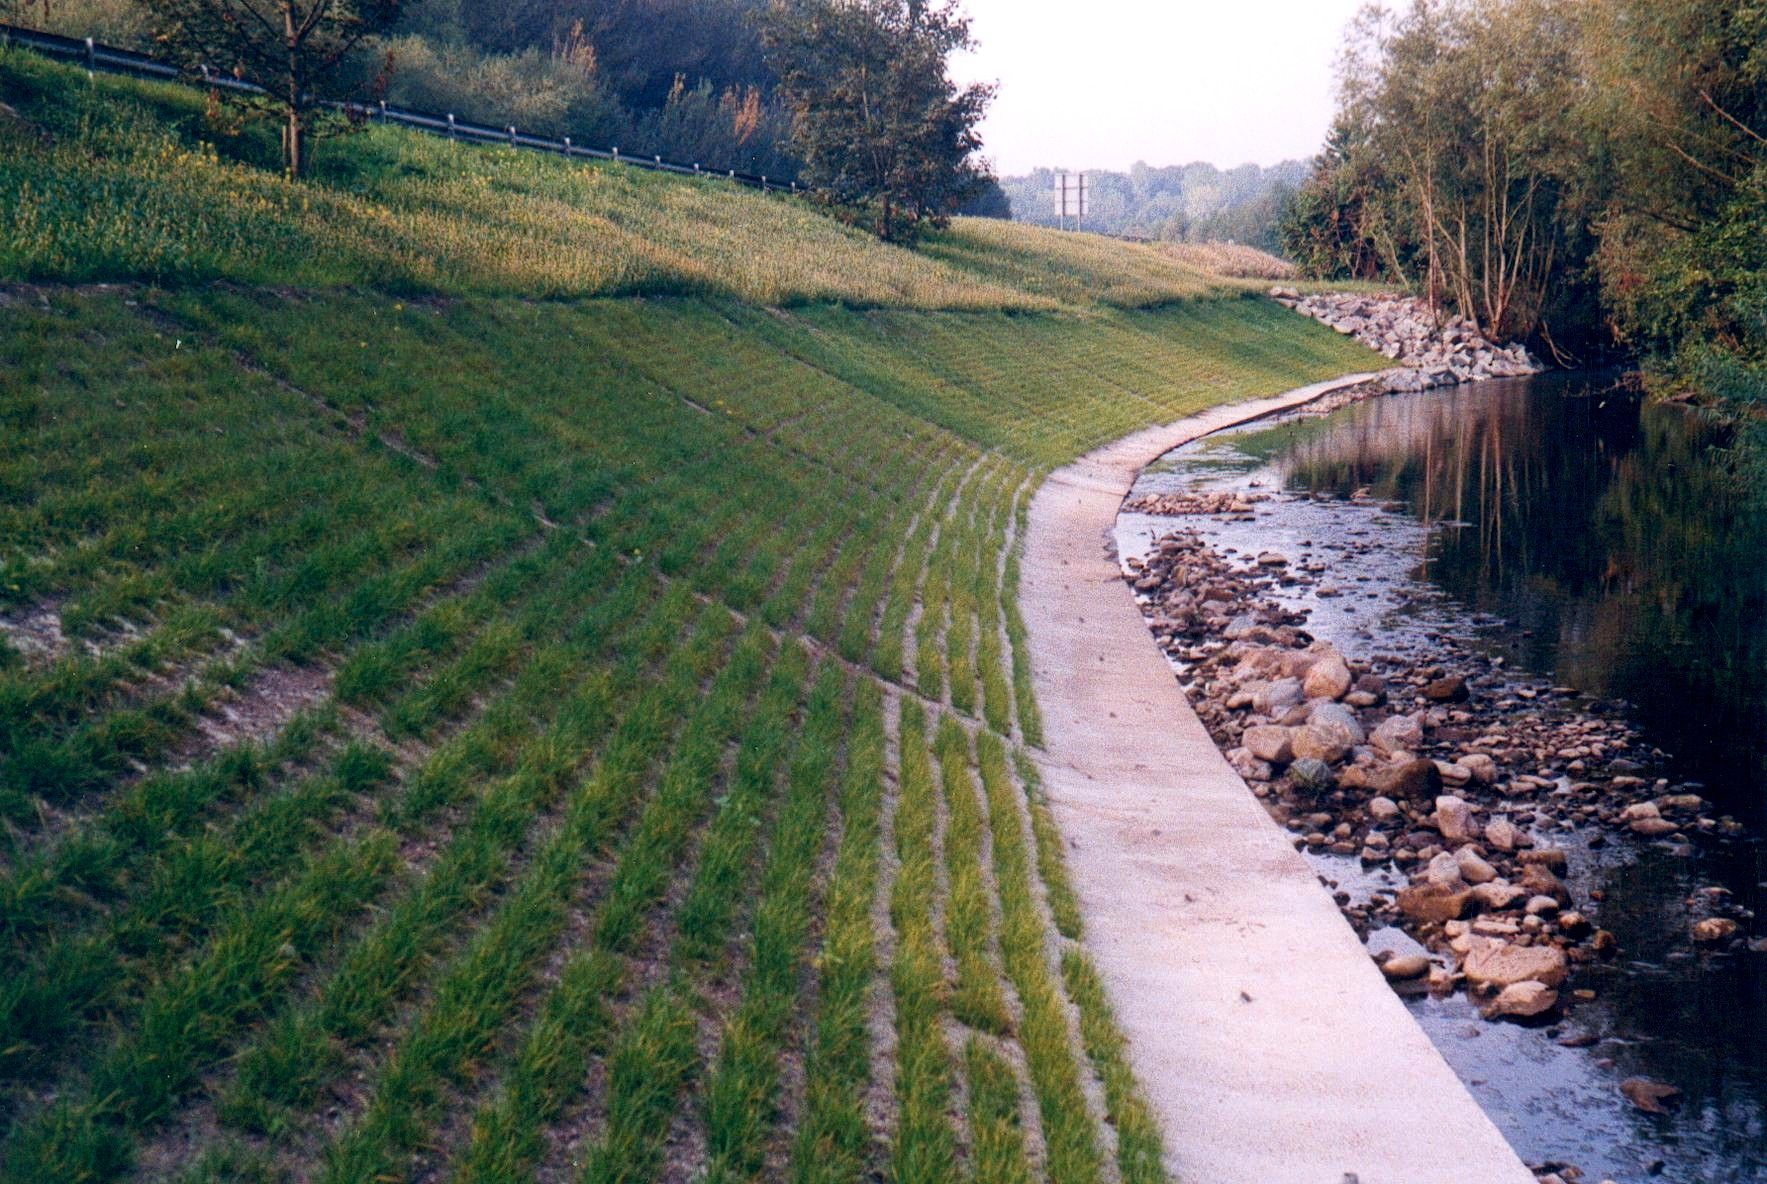 Grasscrete - Early Growth River Embankment